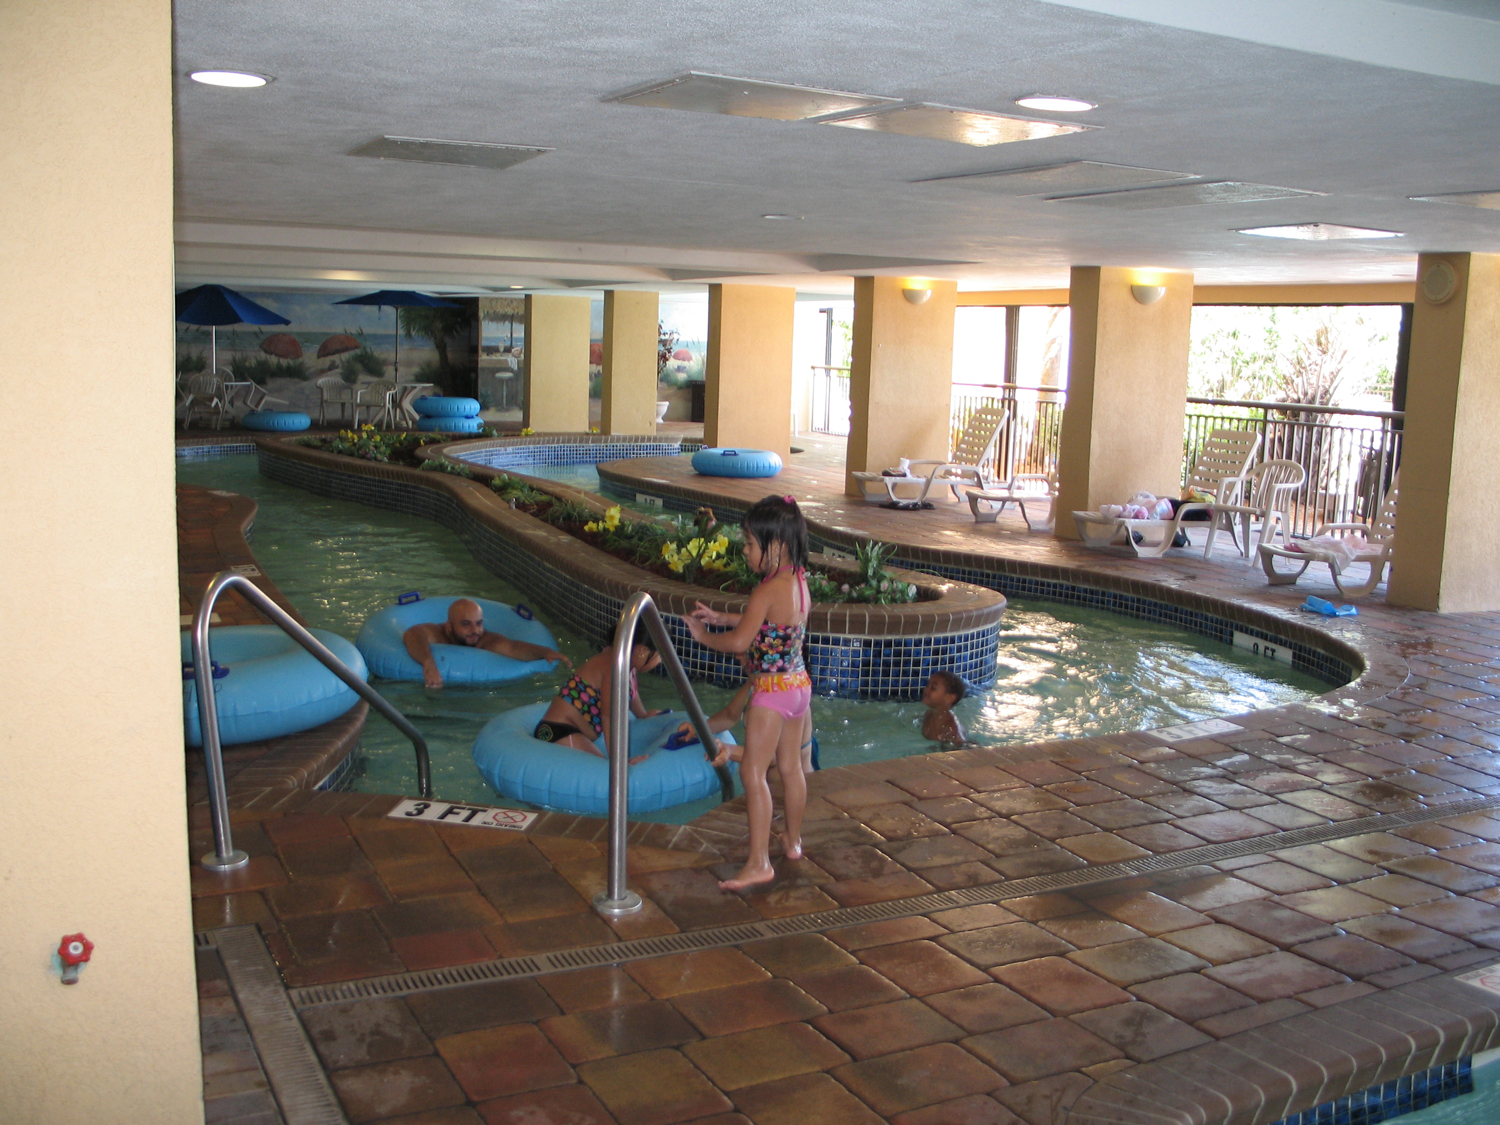 Holiday Inn at the Pavilion indoor lazy river